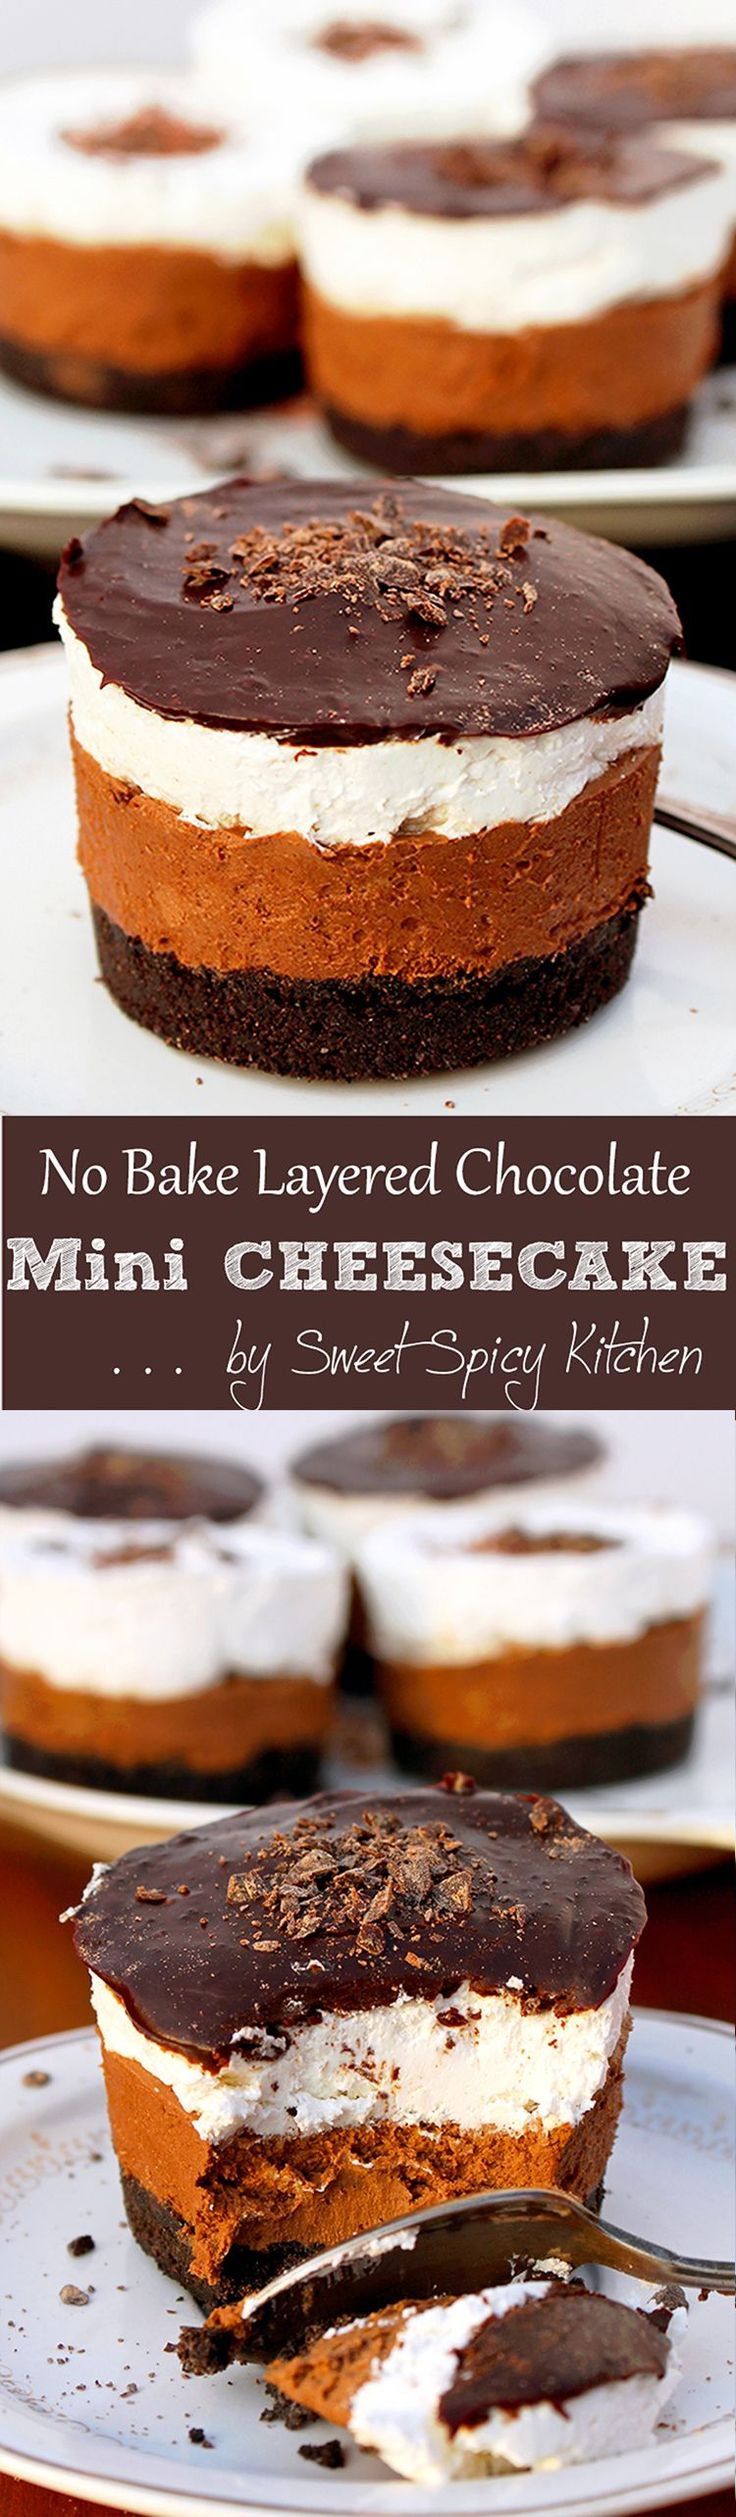 No Bake Layered Chocolate Mini Cheesecake